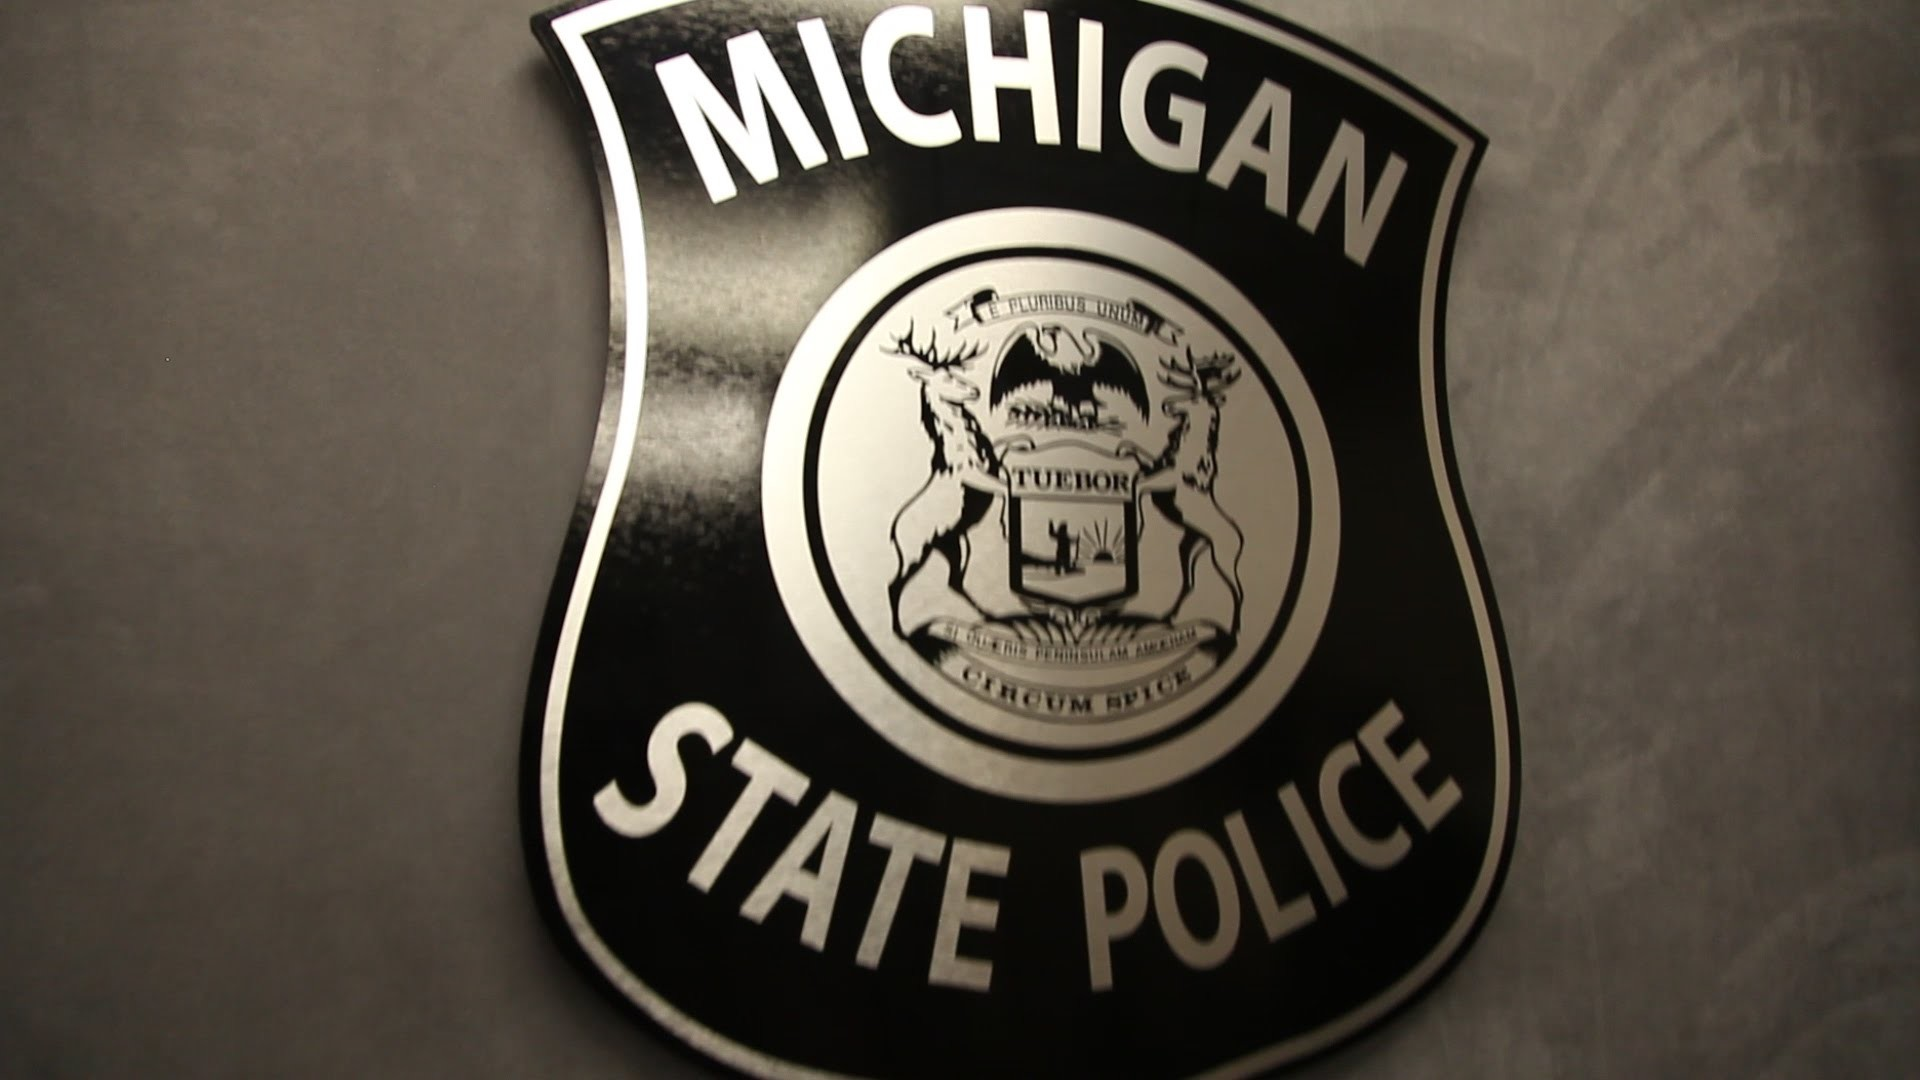 1920x1080 Michigan State Police Get Single Sign-On With NetIQ